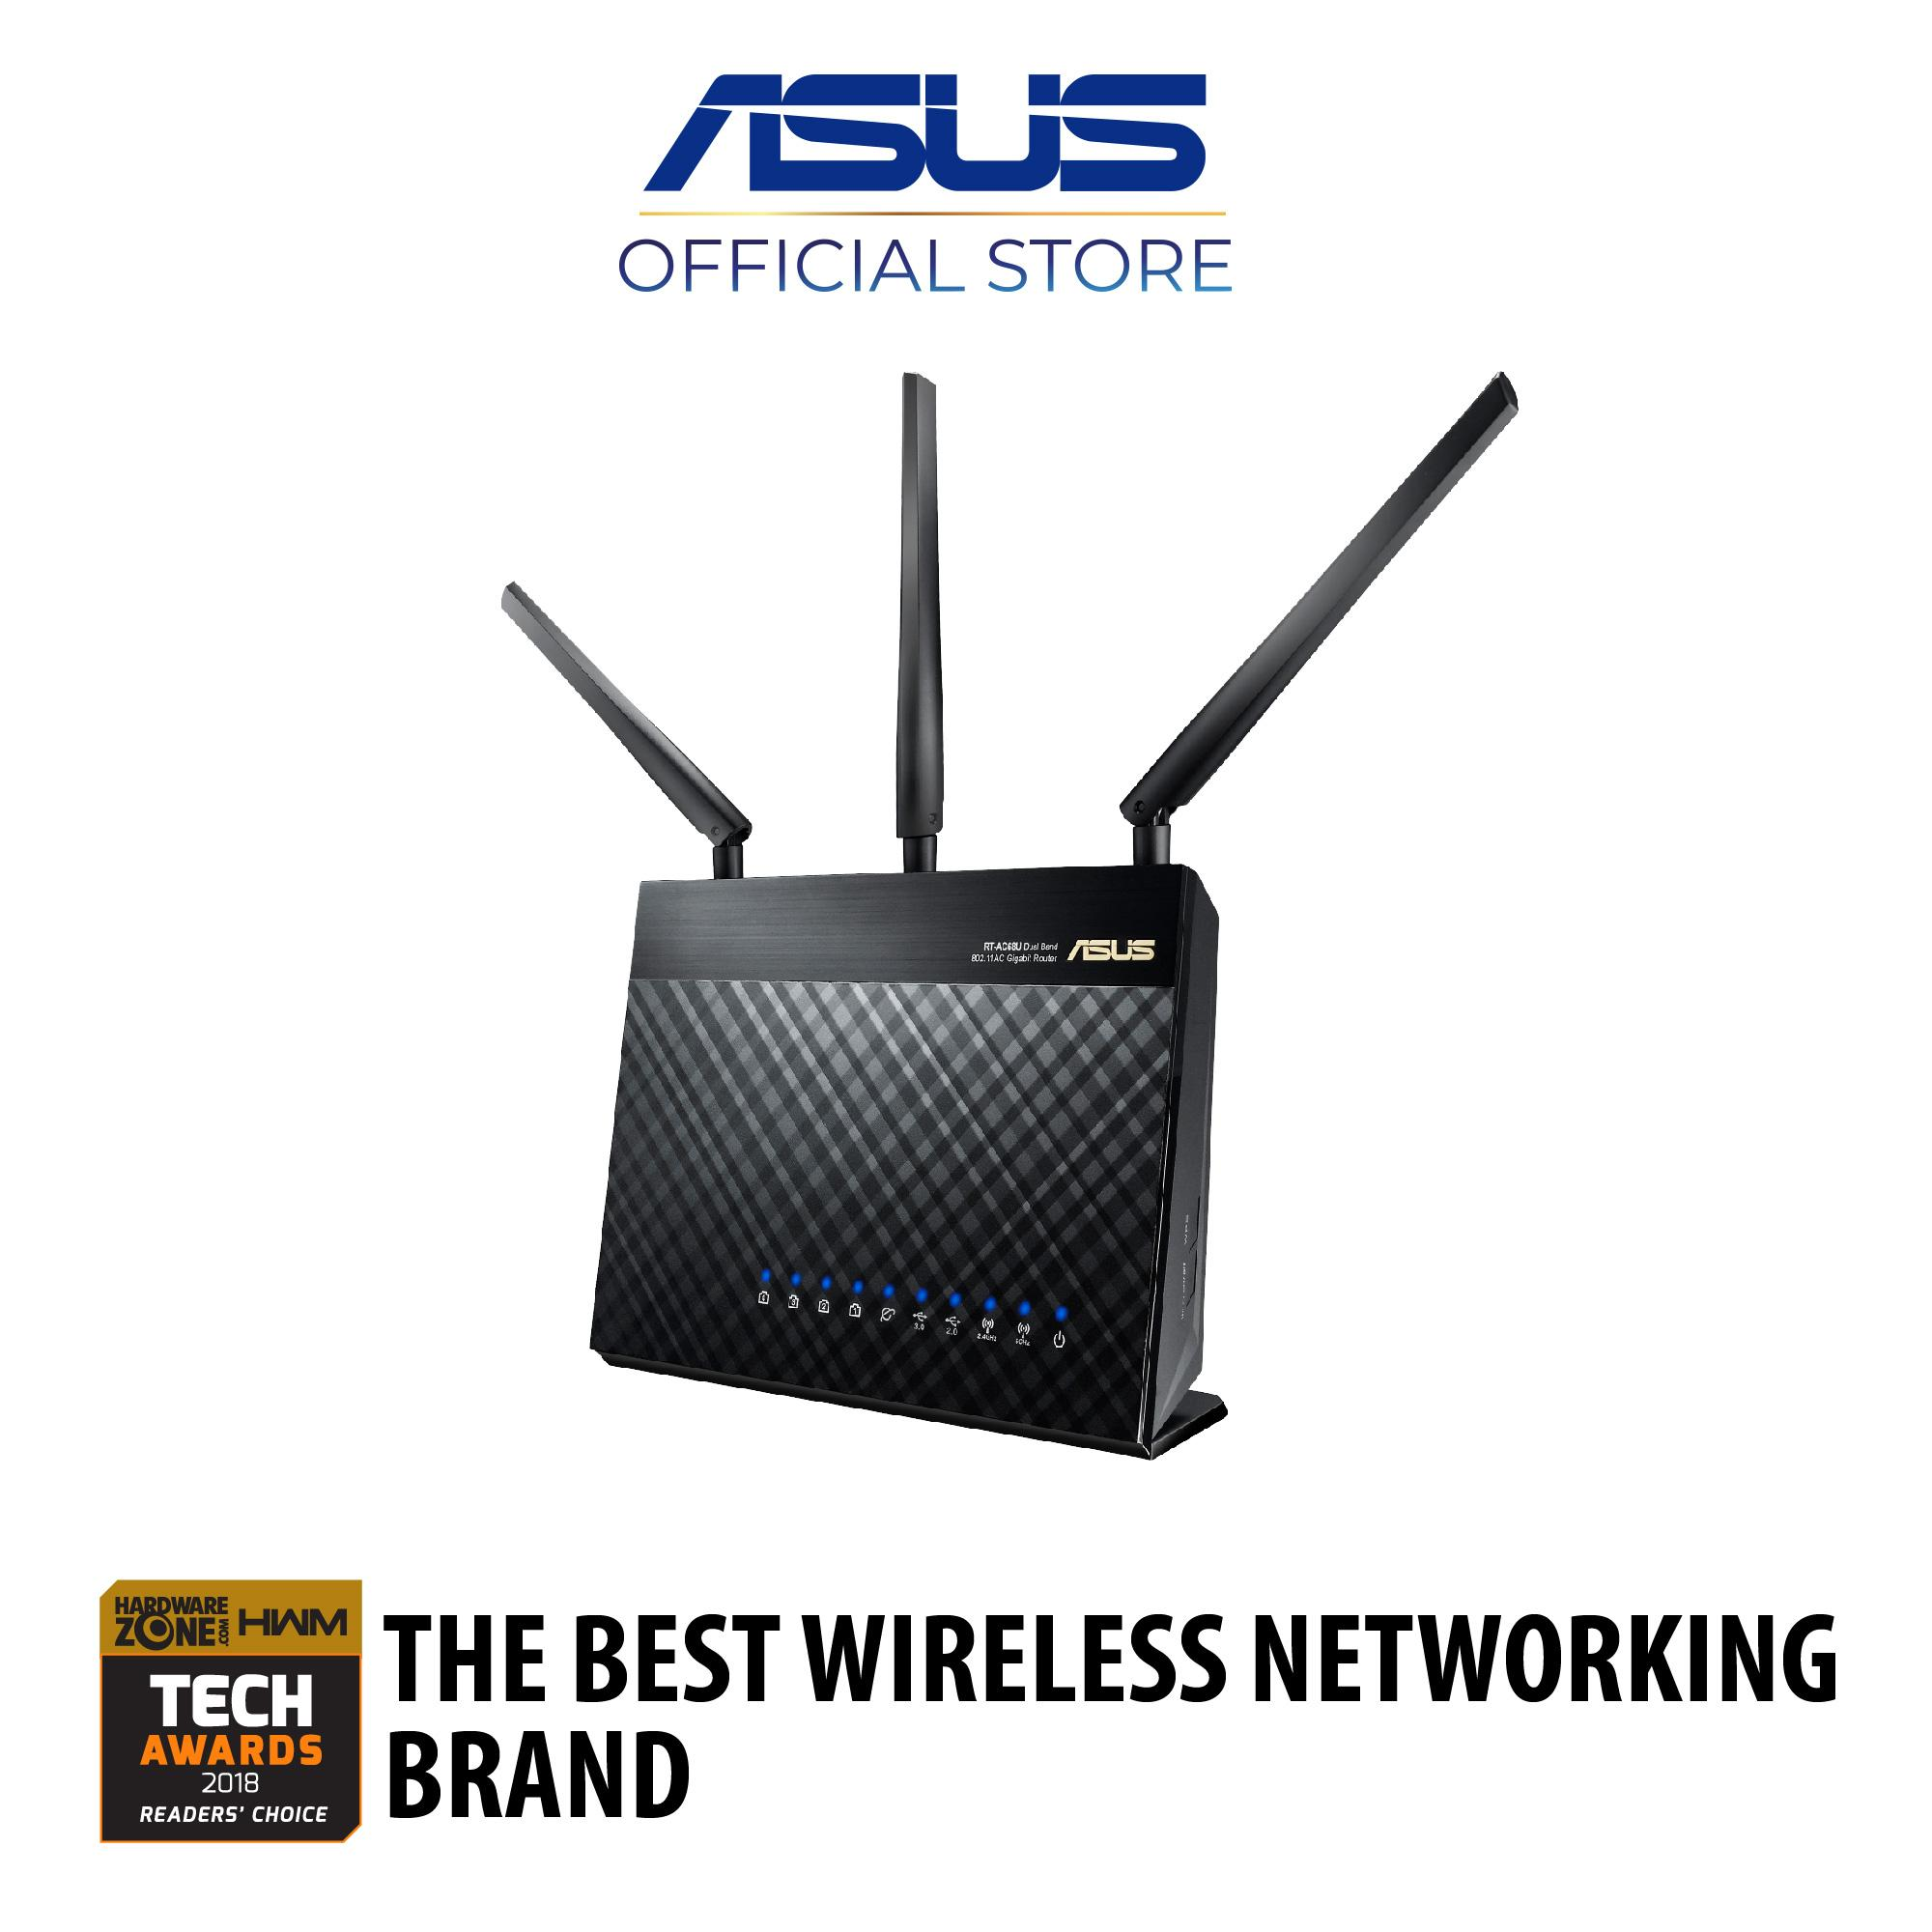 Asus Philippines Routers For Sale Prices Reviews Lazada Rt Ac3200 Tri Band Wireless Gigabit Router Ac68u Ac1900 Dual Wifi Aimesh Mesh System